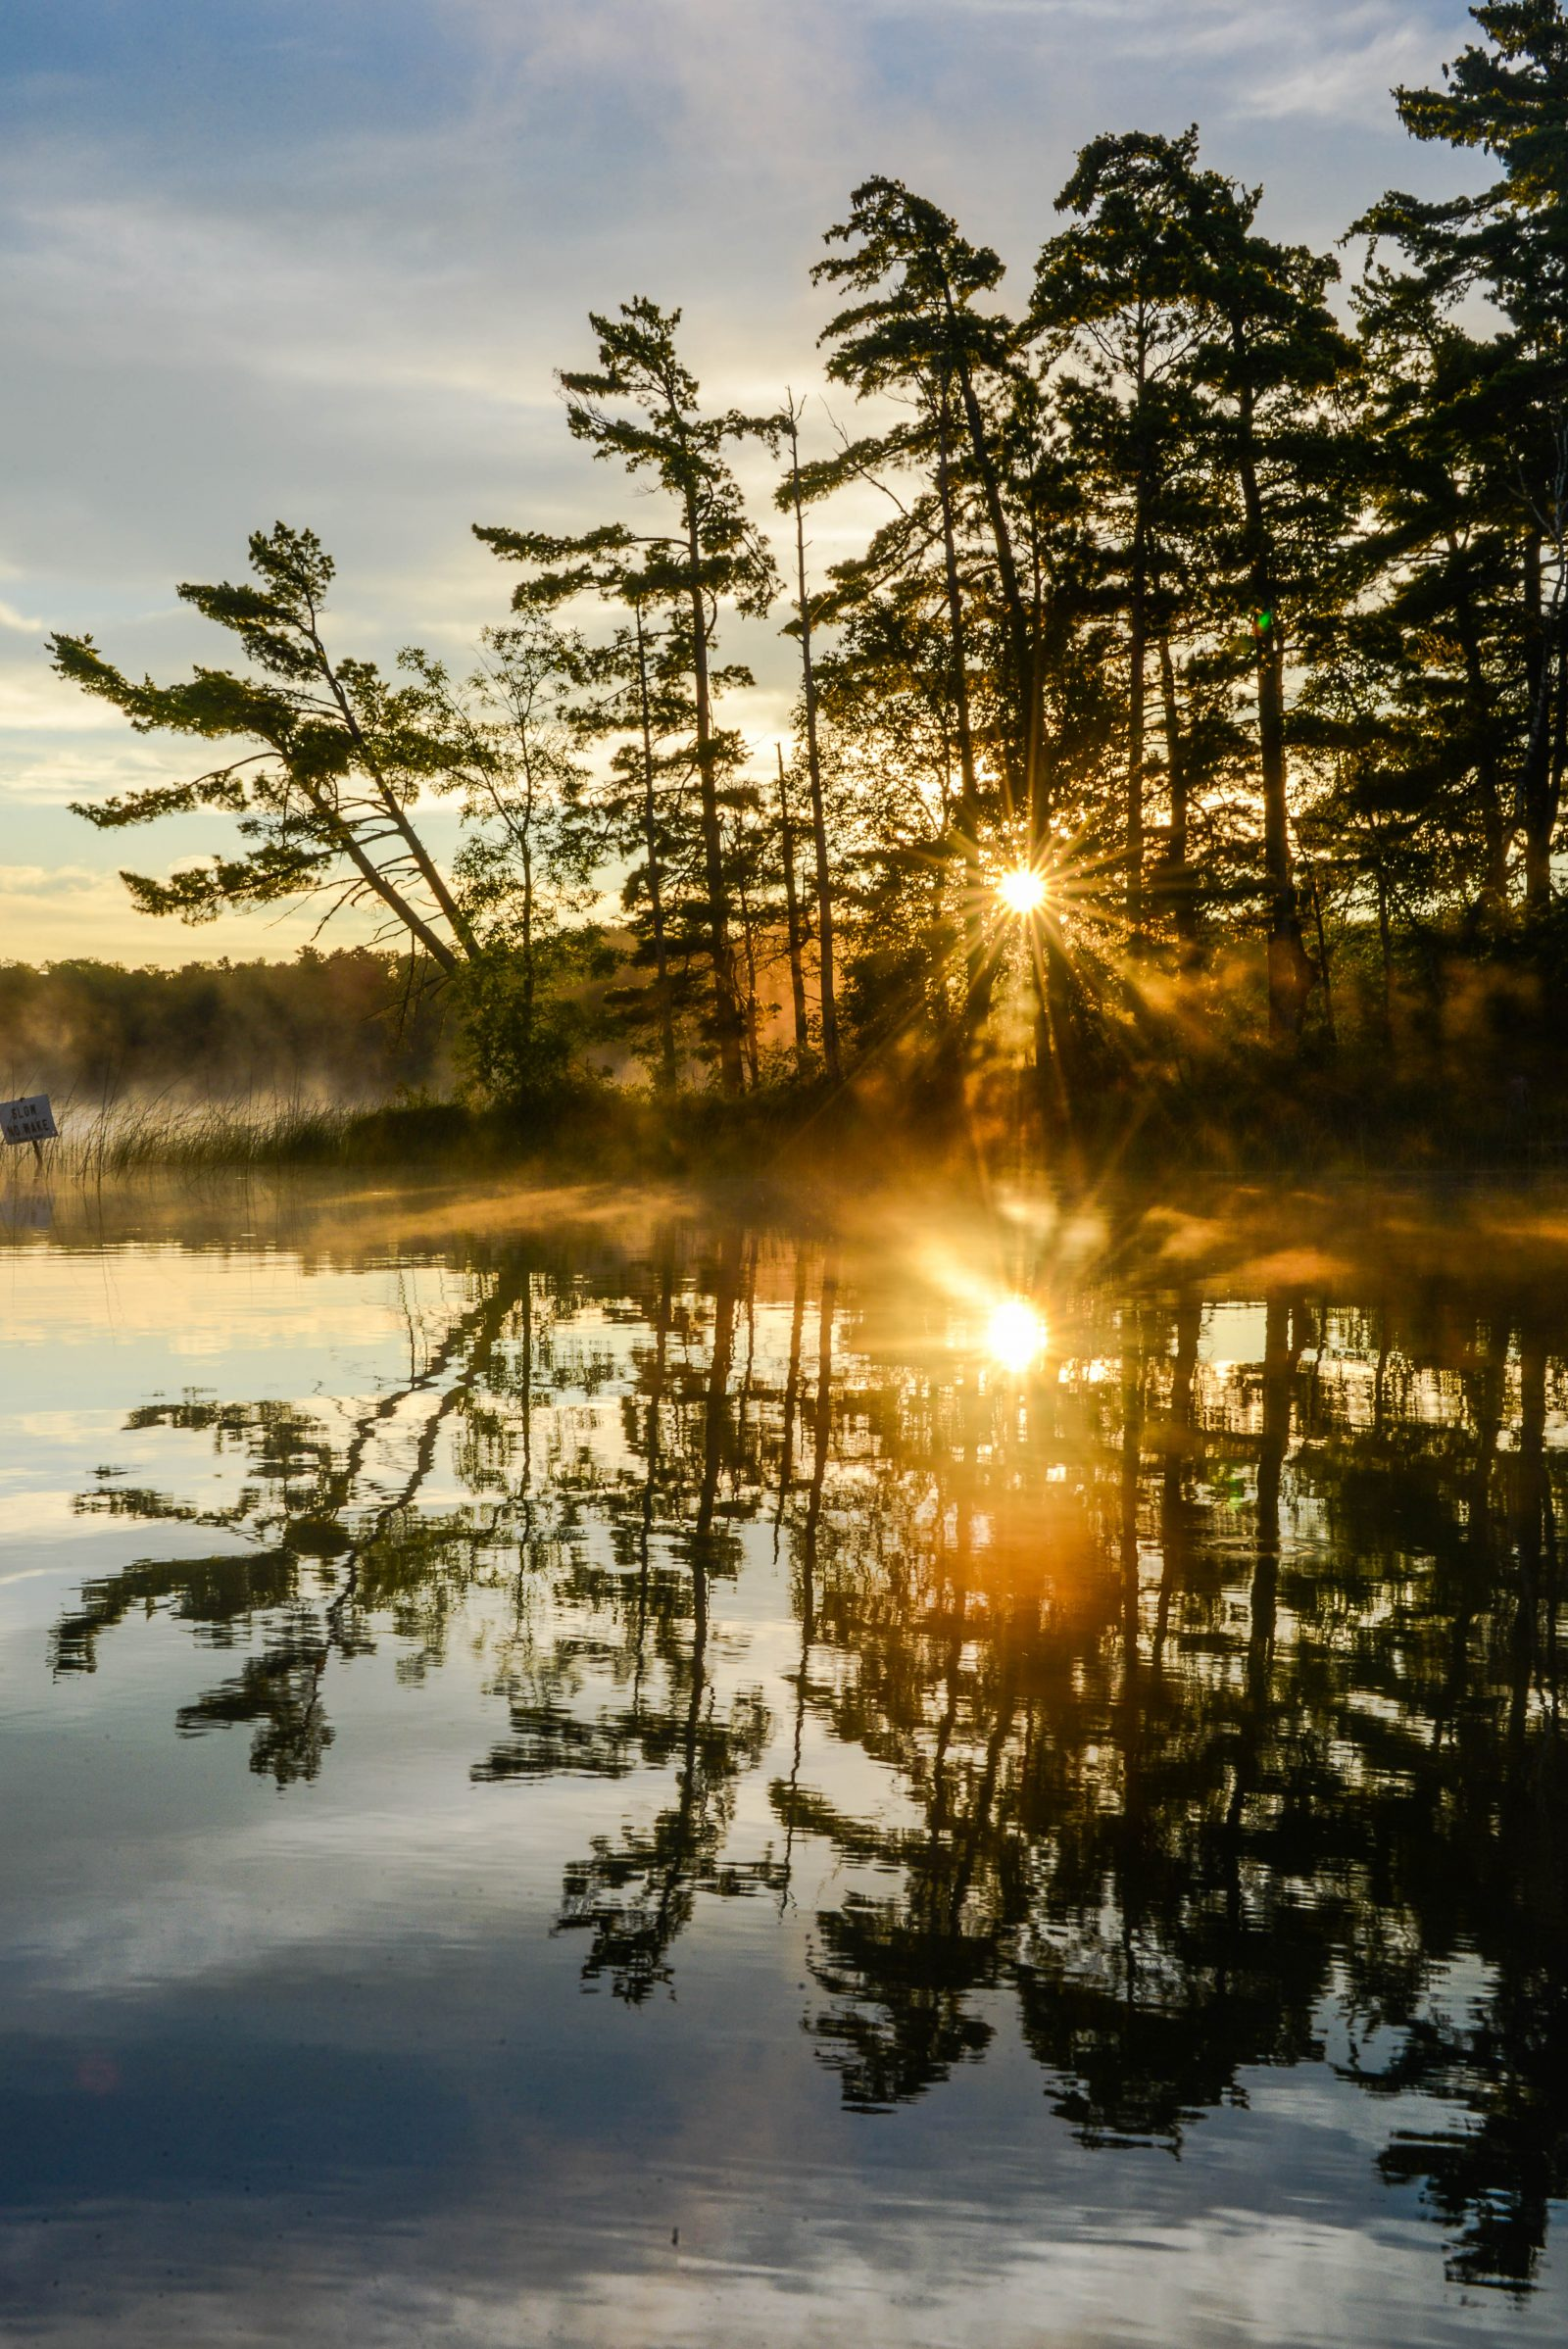 Reflections on a Summer Morning